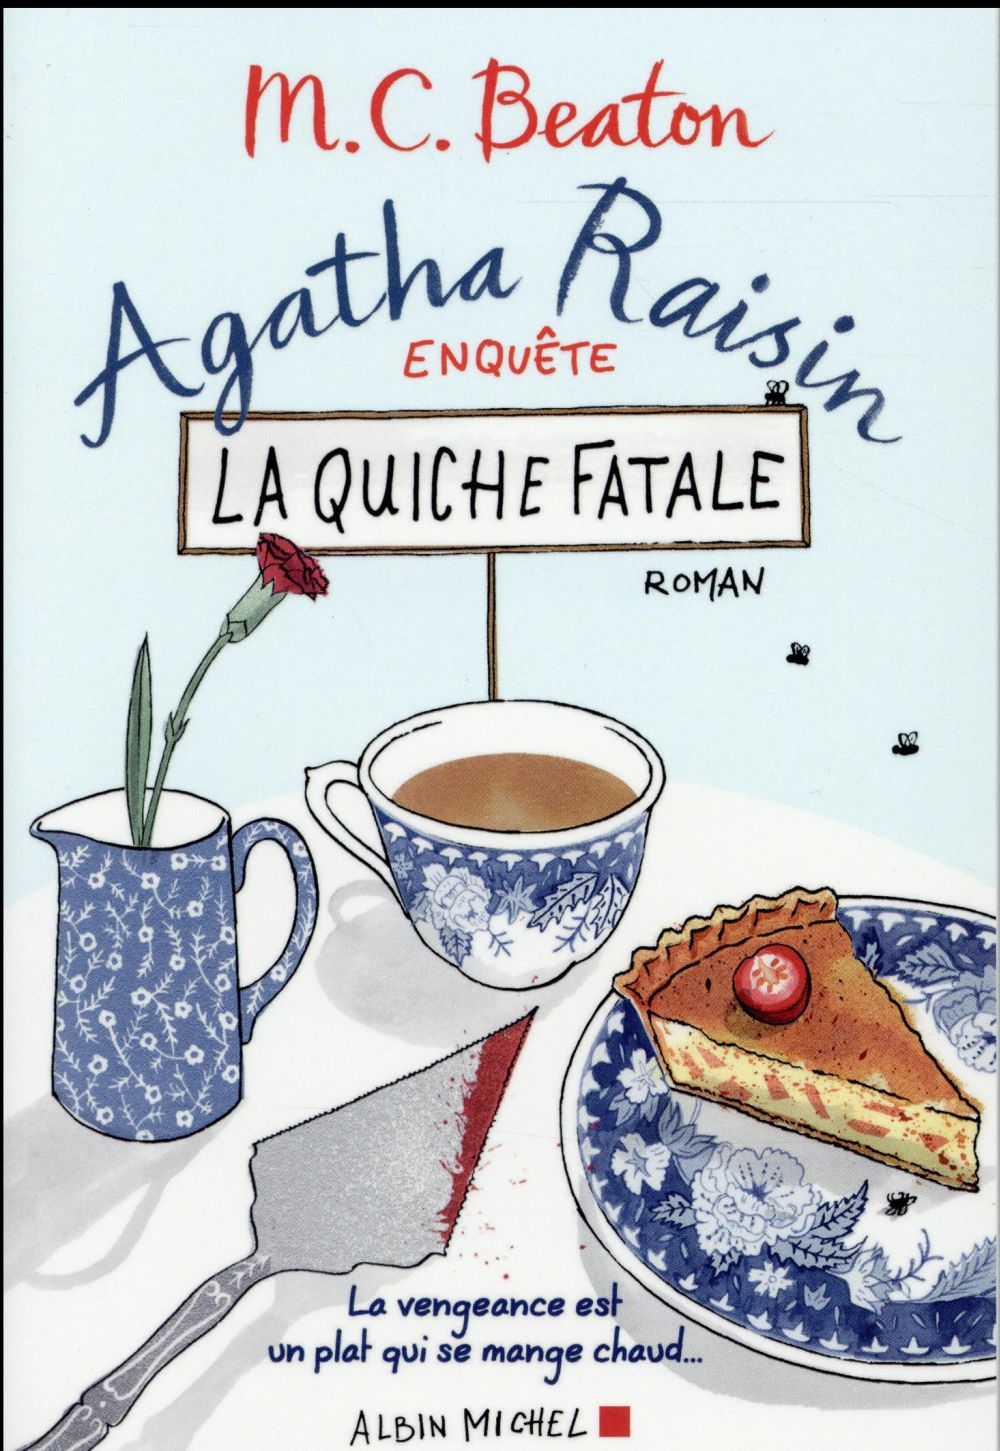 AGATHA RAISIN ENQUETE 1 - LA QUICHE FATALE